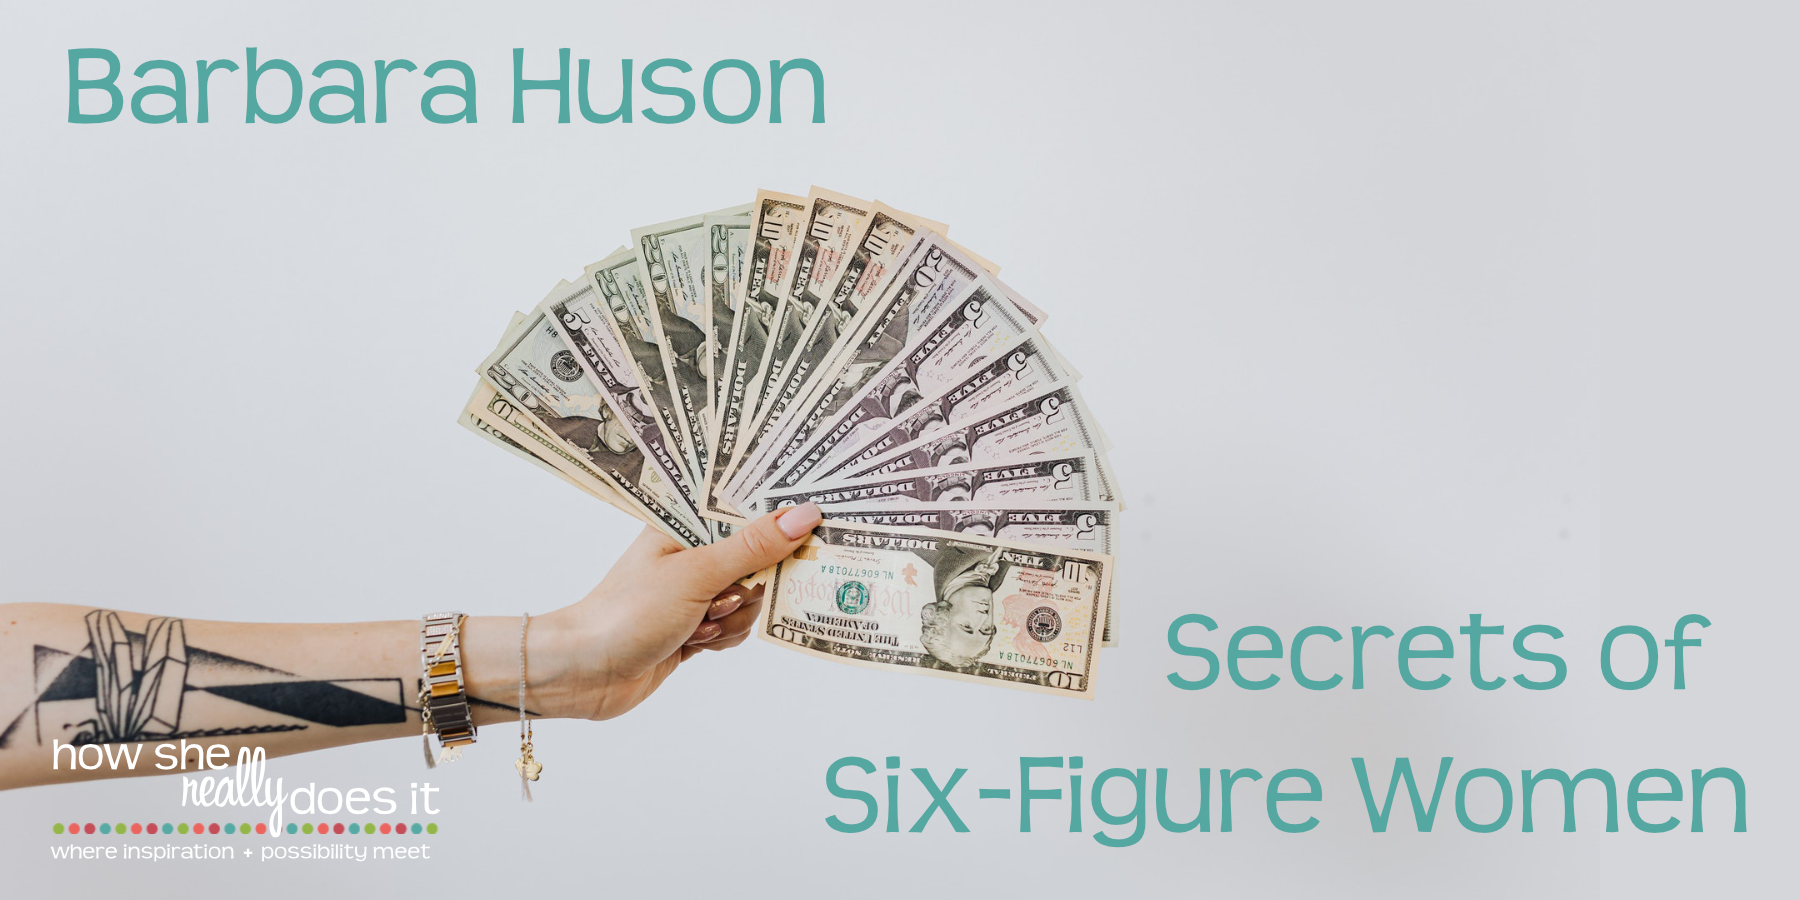 Podcast image for 'Barbara Huson: The Secrets of Six-Figure Women""